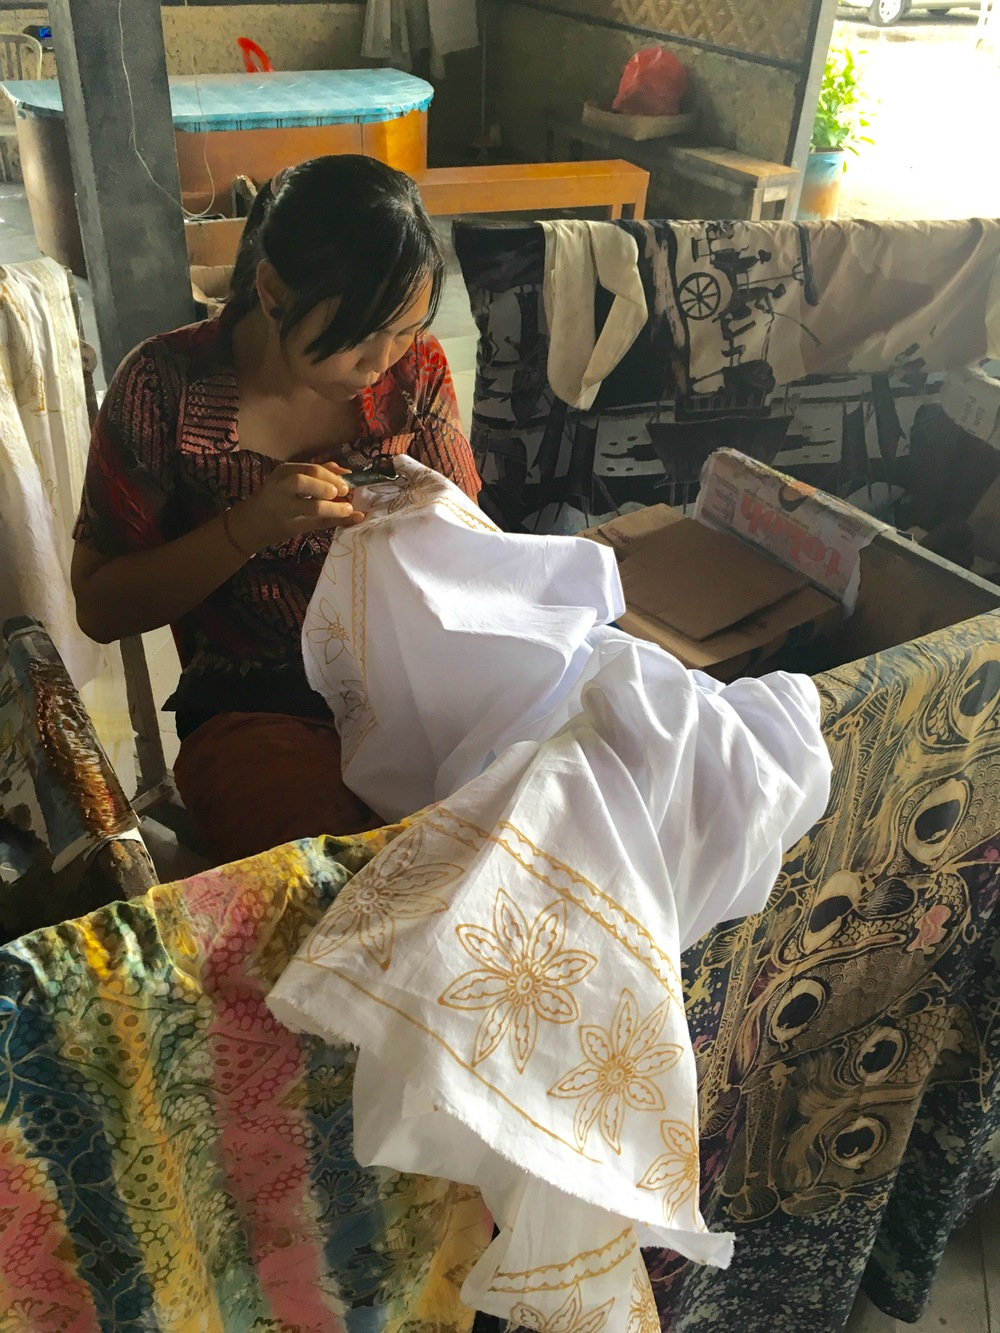 A Balinese woman drawing wax designs on fabric before she paints them.